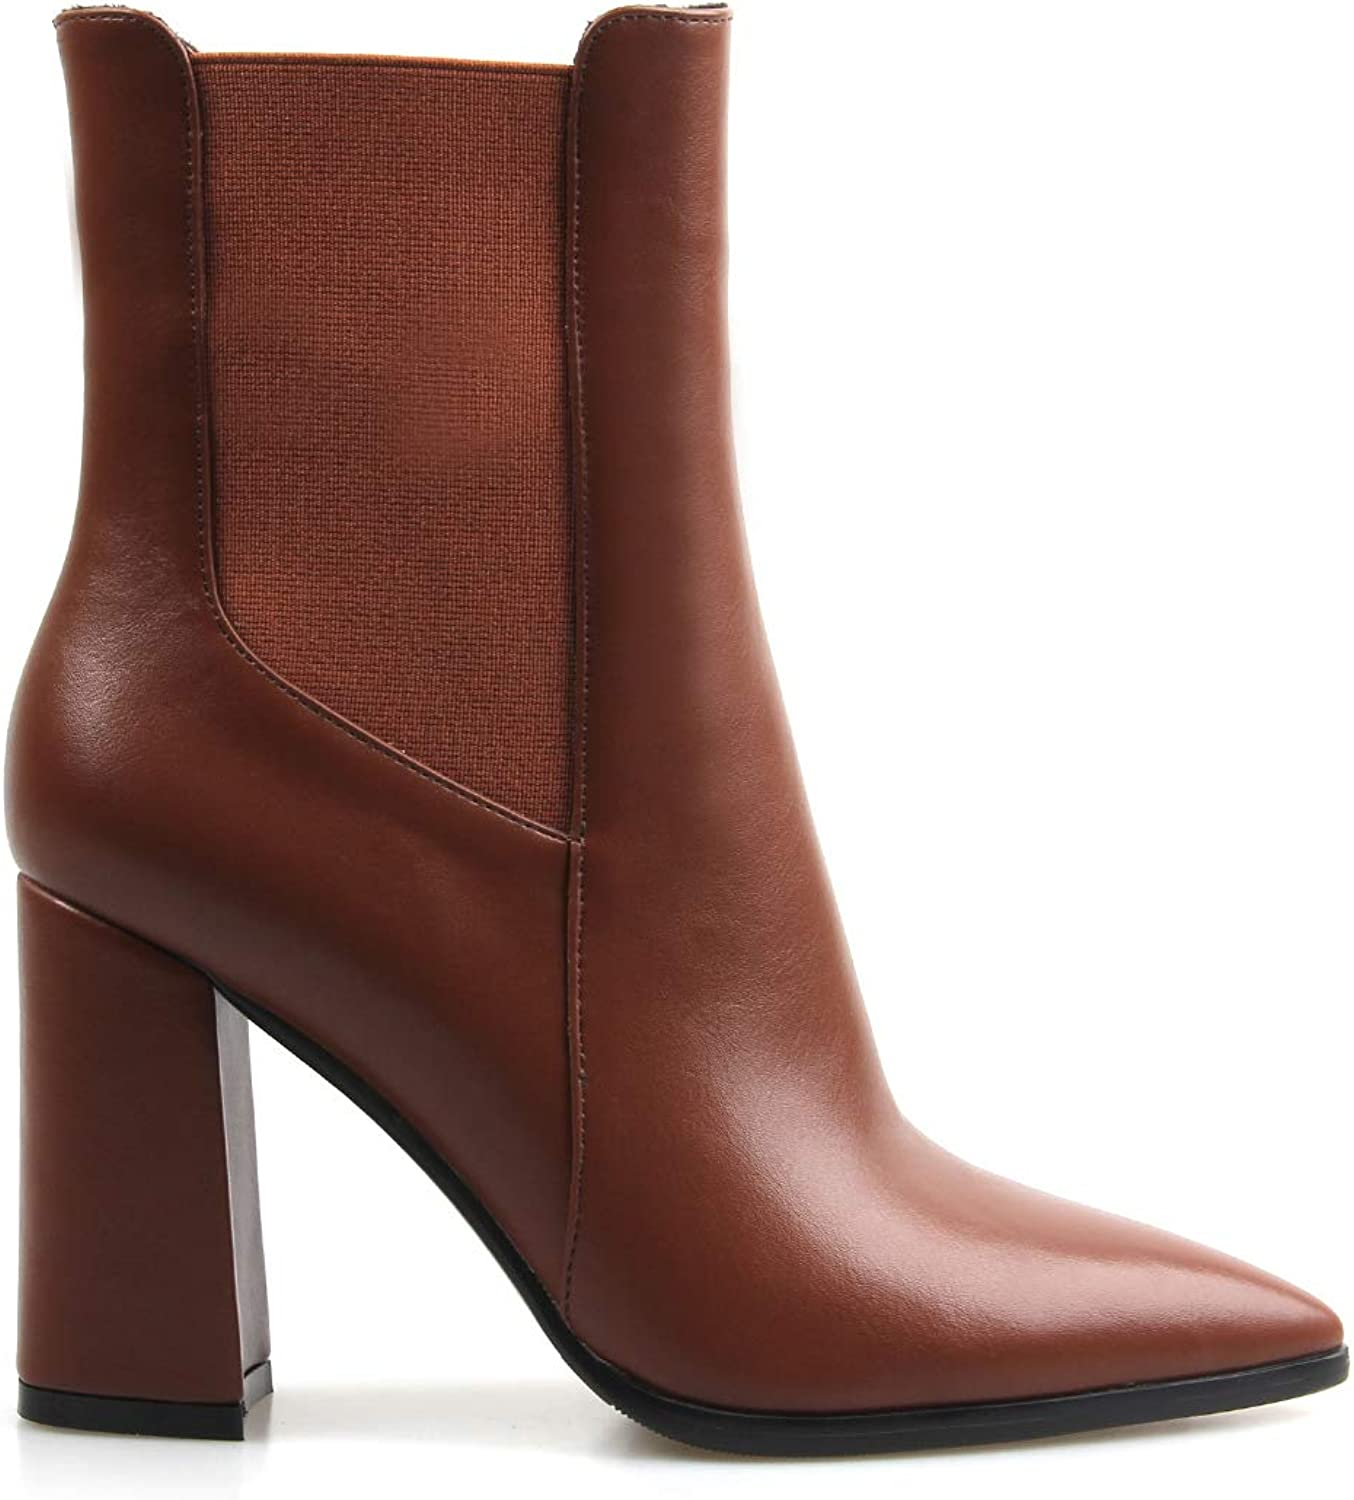 Perixir Women Ankle Boots PU Short Boots High Heel Boots Pointed Toe Square Heel Booties